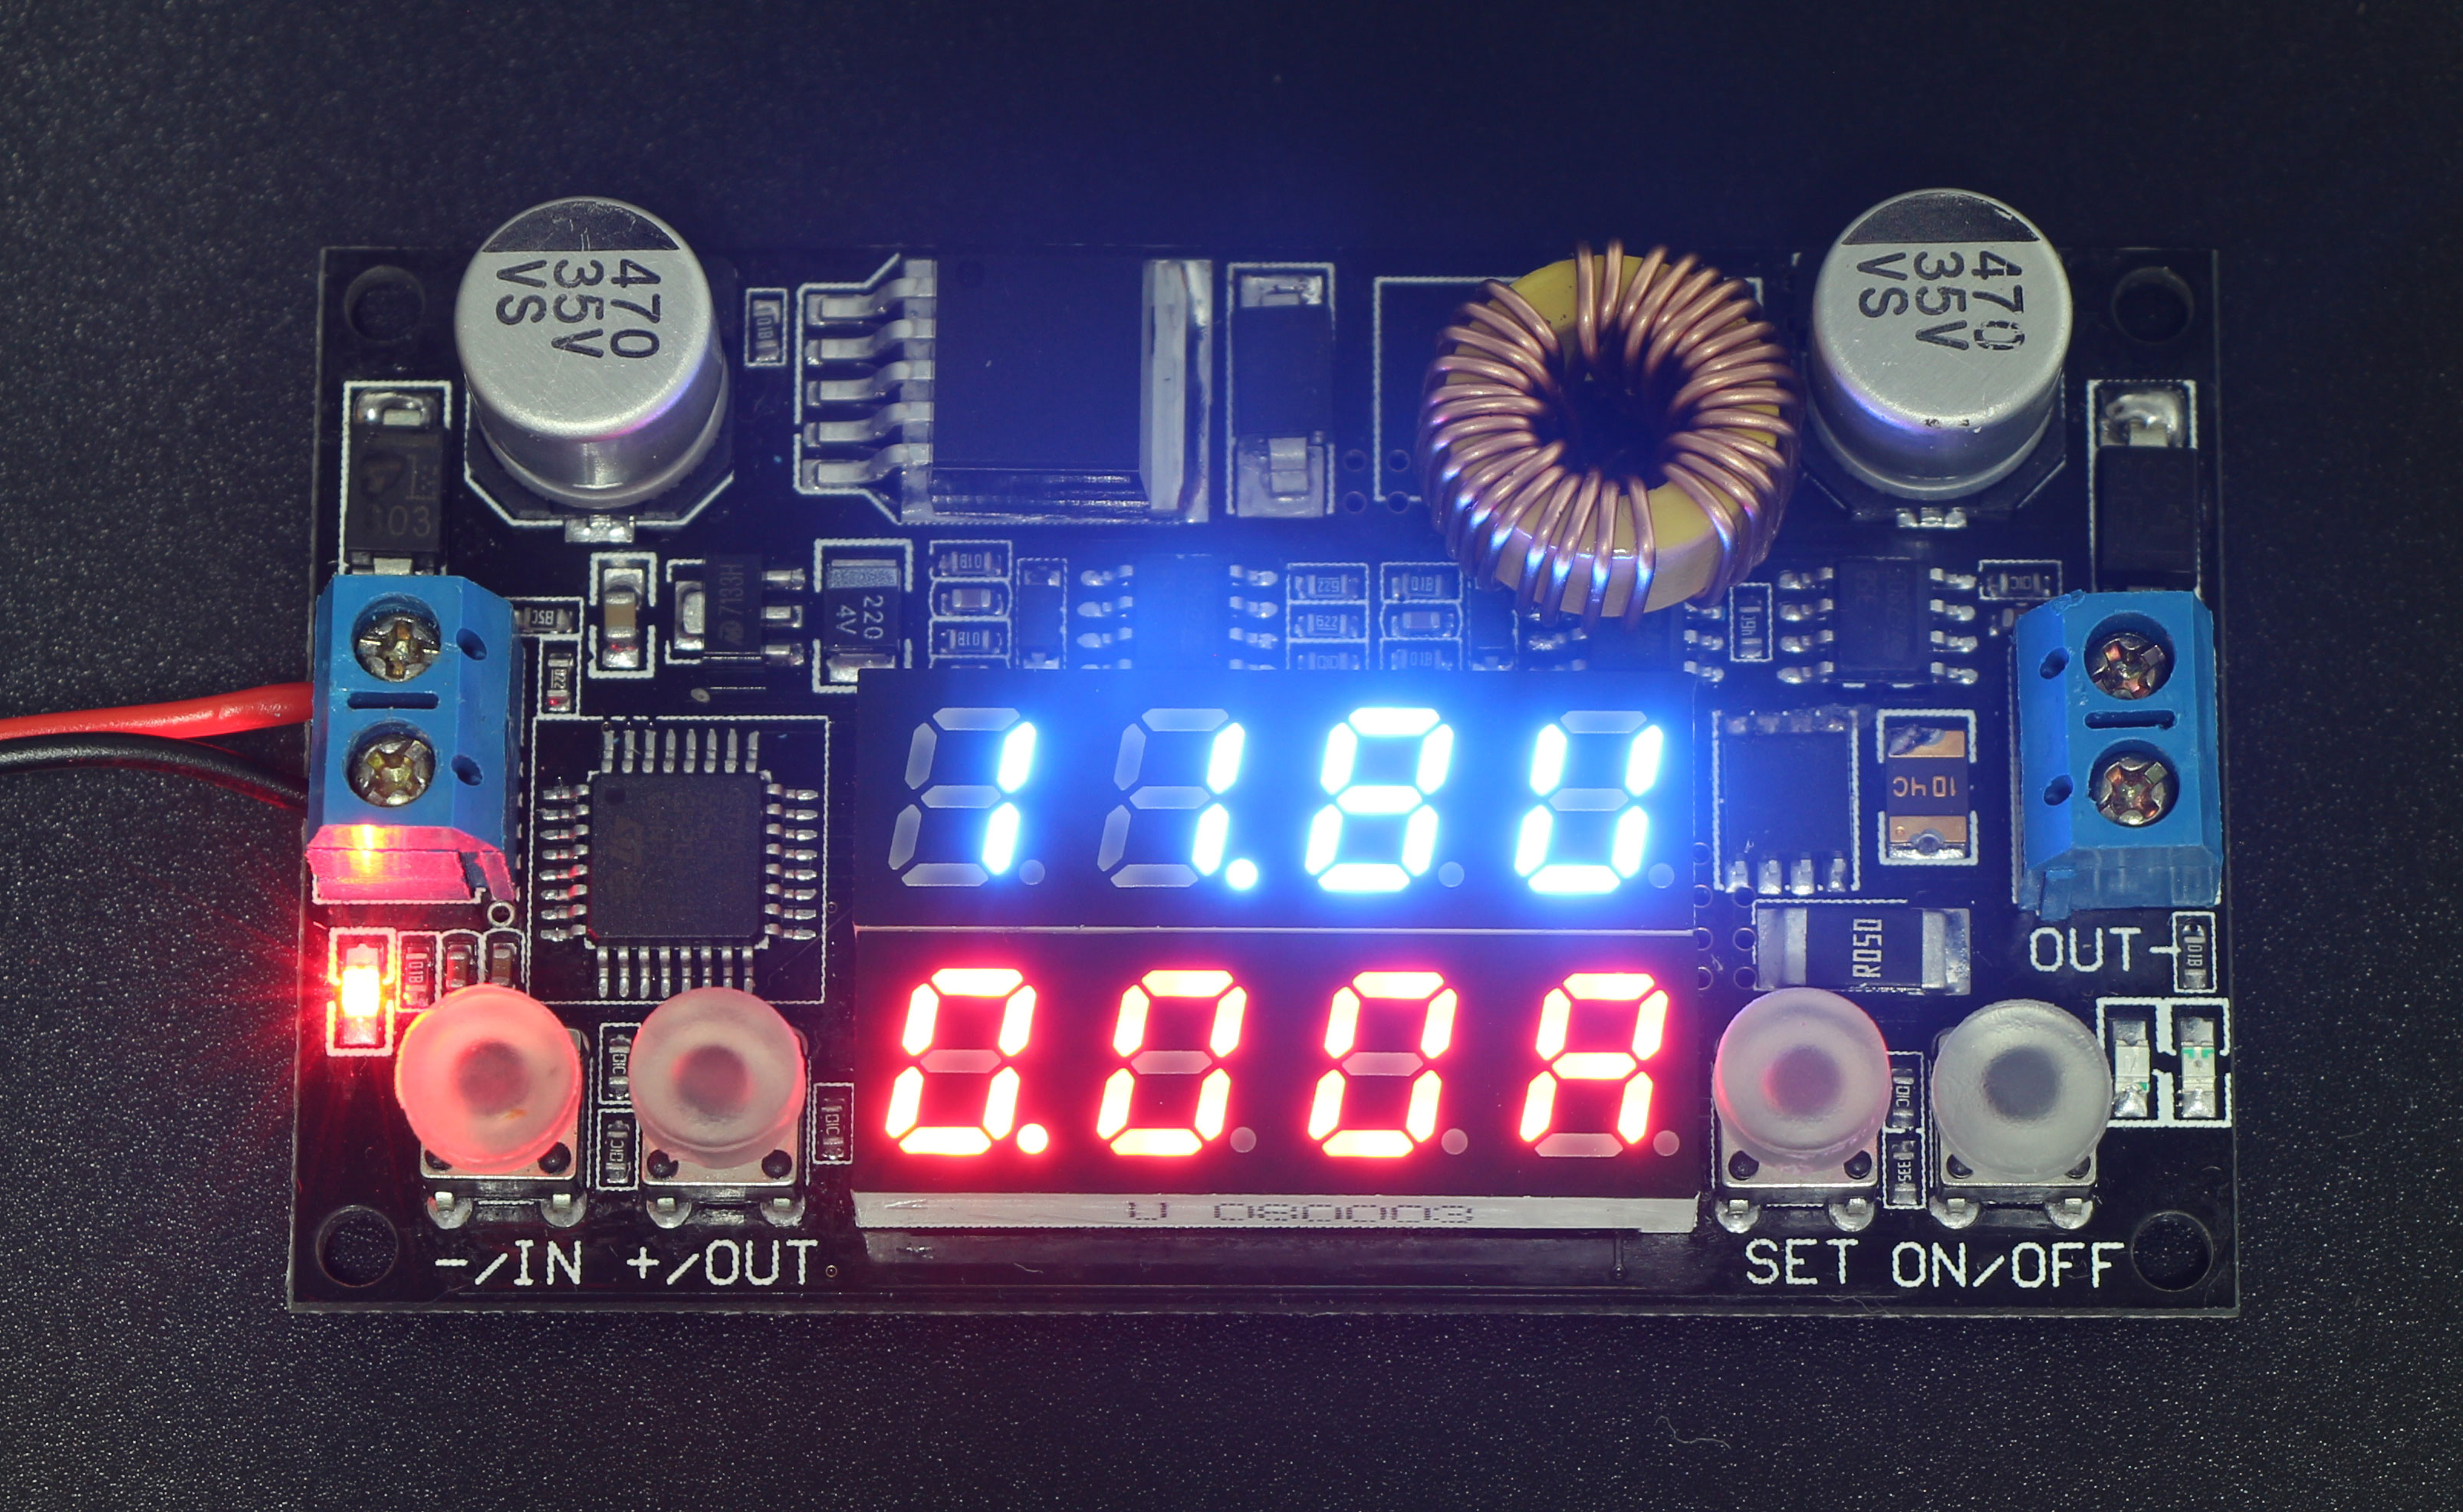 Numerical Control Constant Current Voltage Regulator Dual Led Our Schematic Display